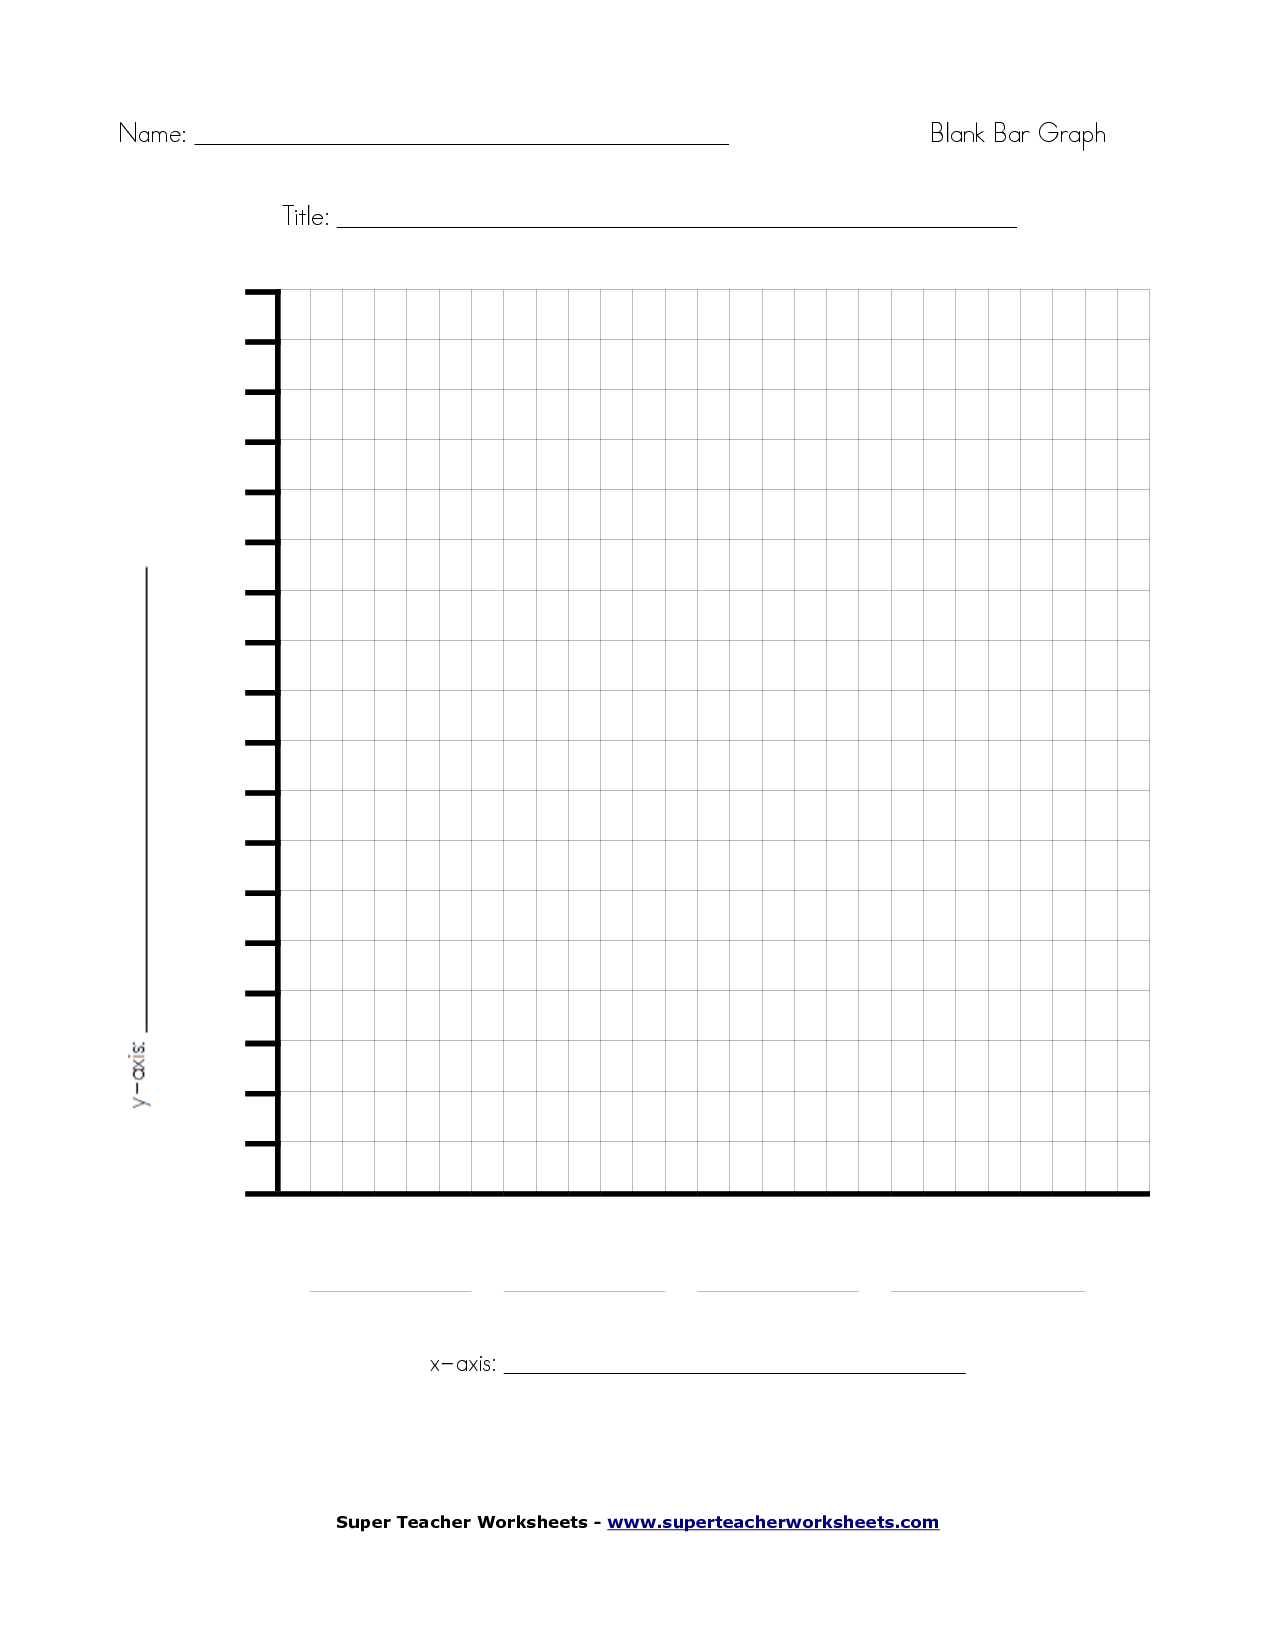 View source image – Blank Bar Graph Templates